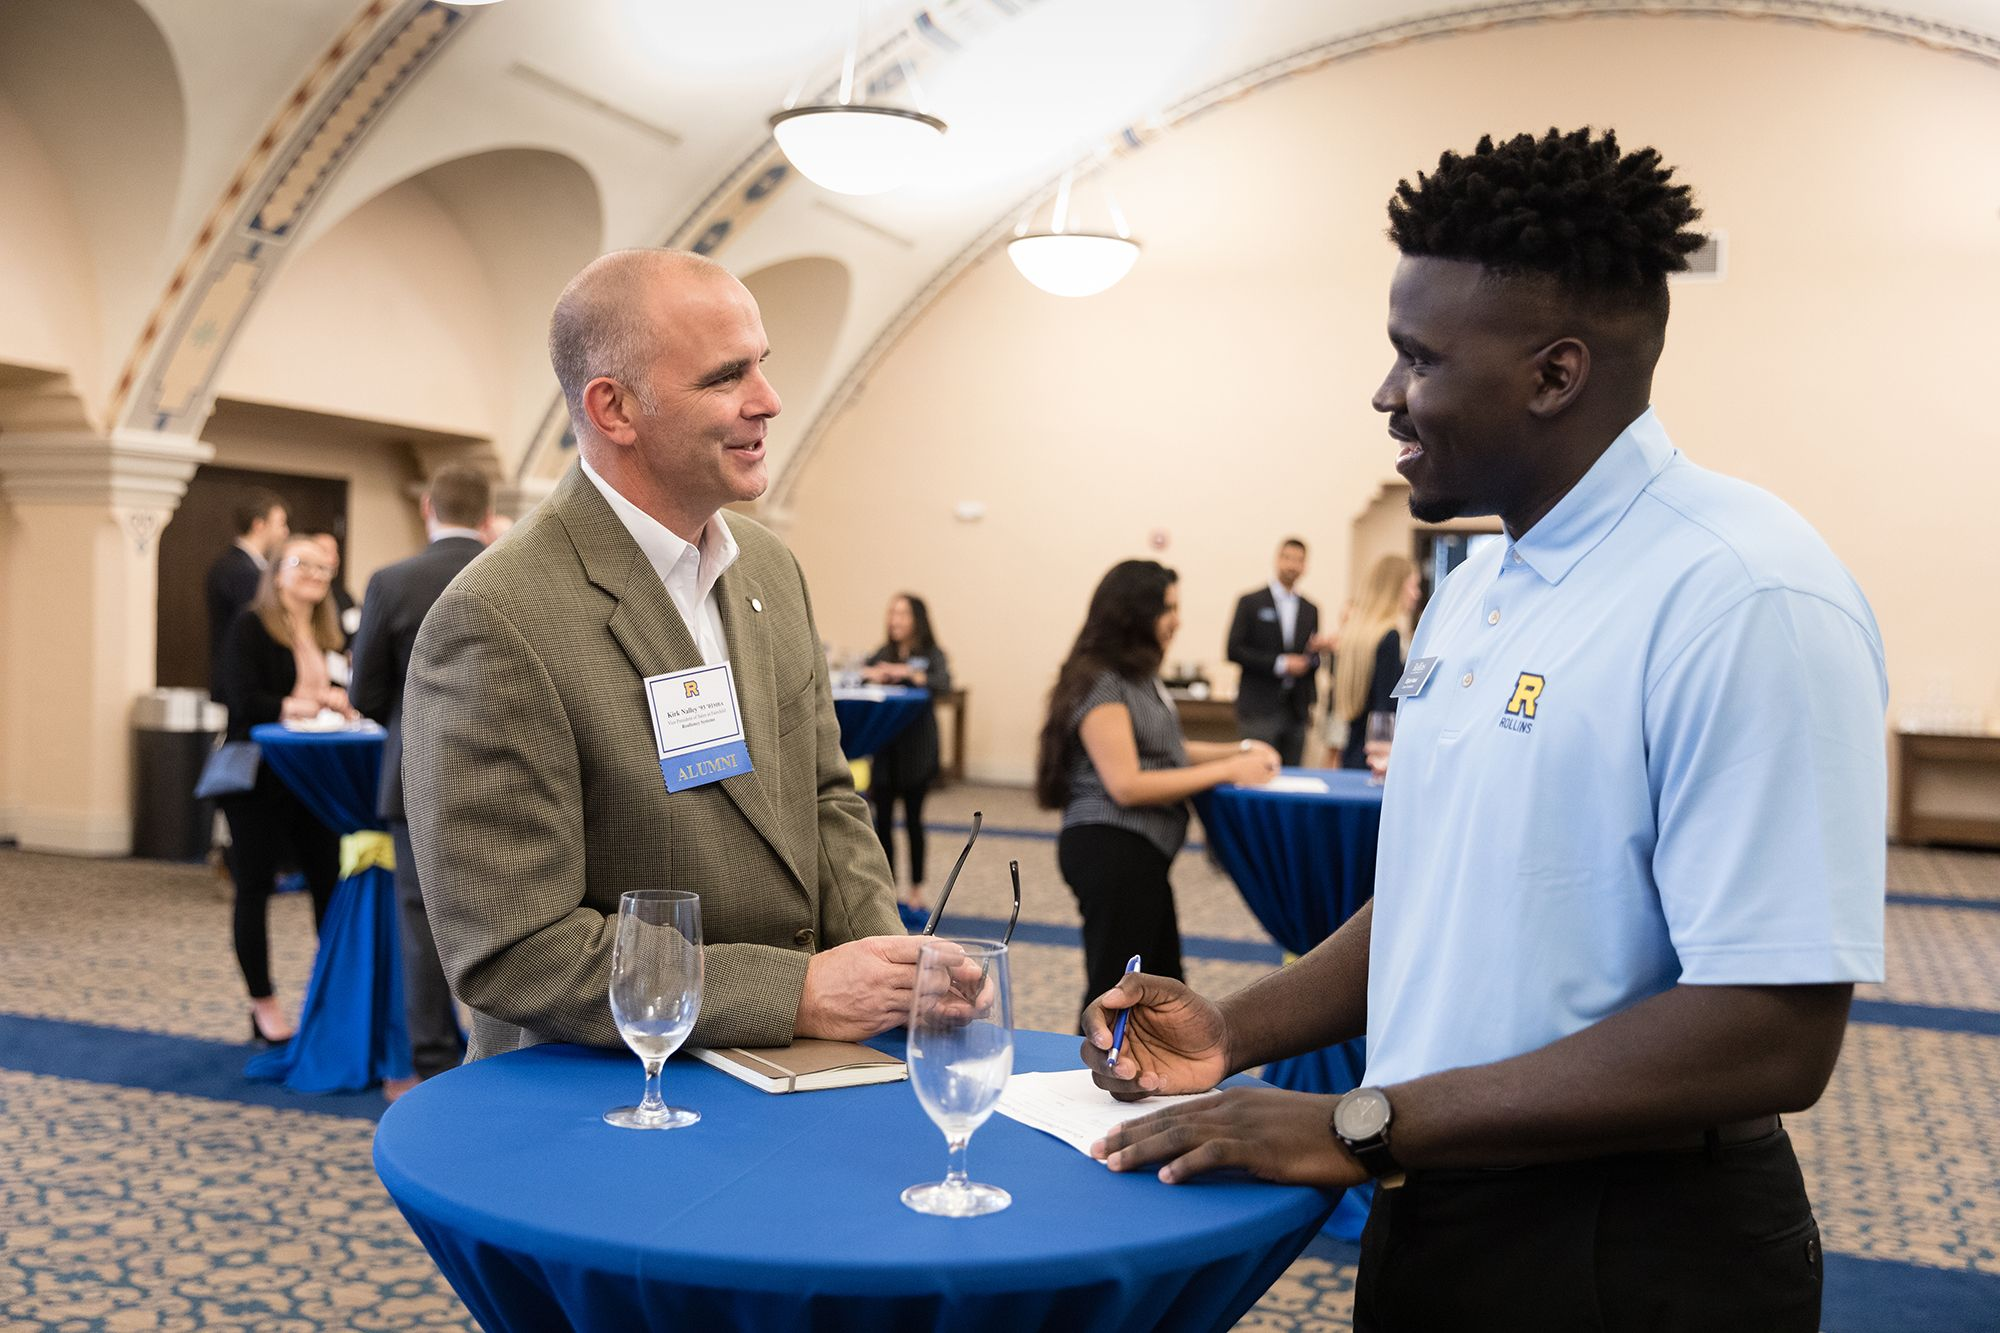 A local Orlando business owner mentoring a Rollins college student.